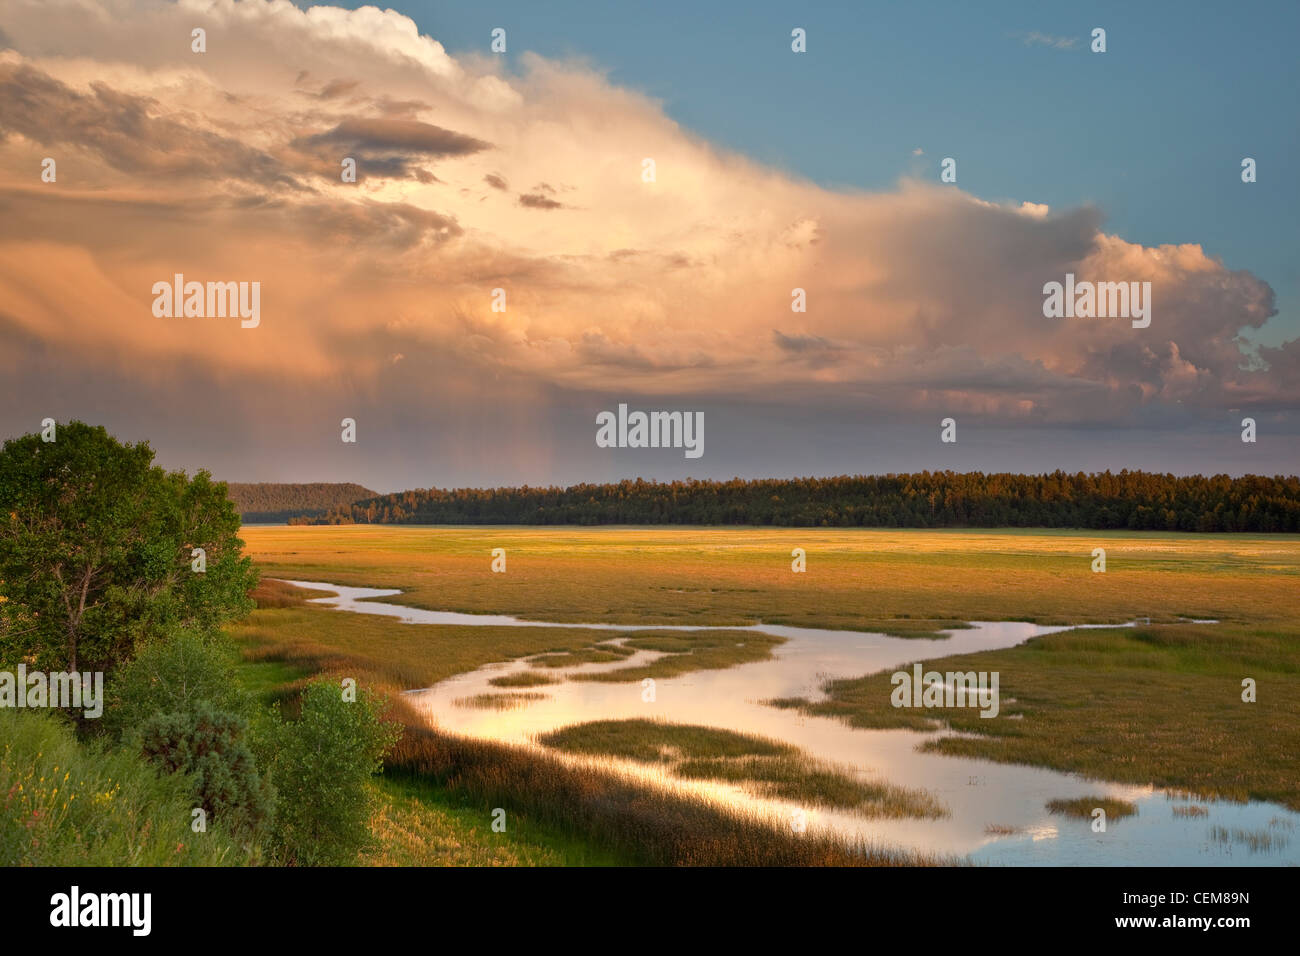 Lower Lake Mary, summer monsoon rainy season, Coconino National Forest, south of Flagstaff, Arizona, USA - Stock Image